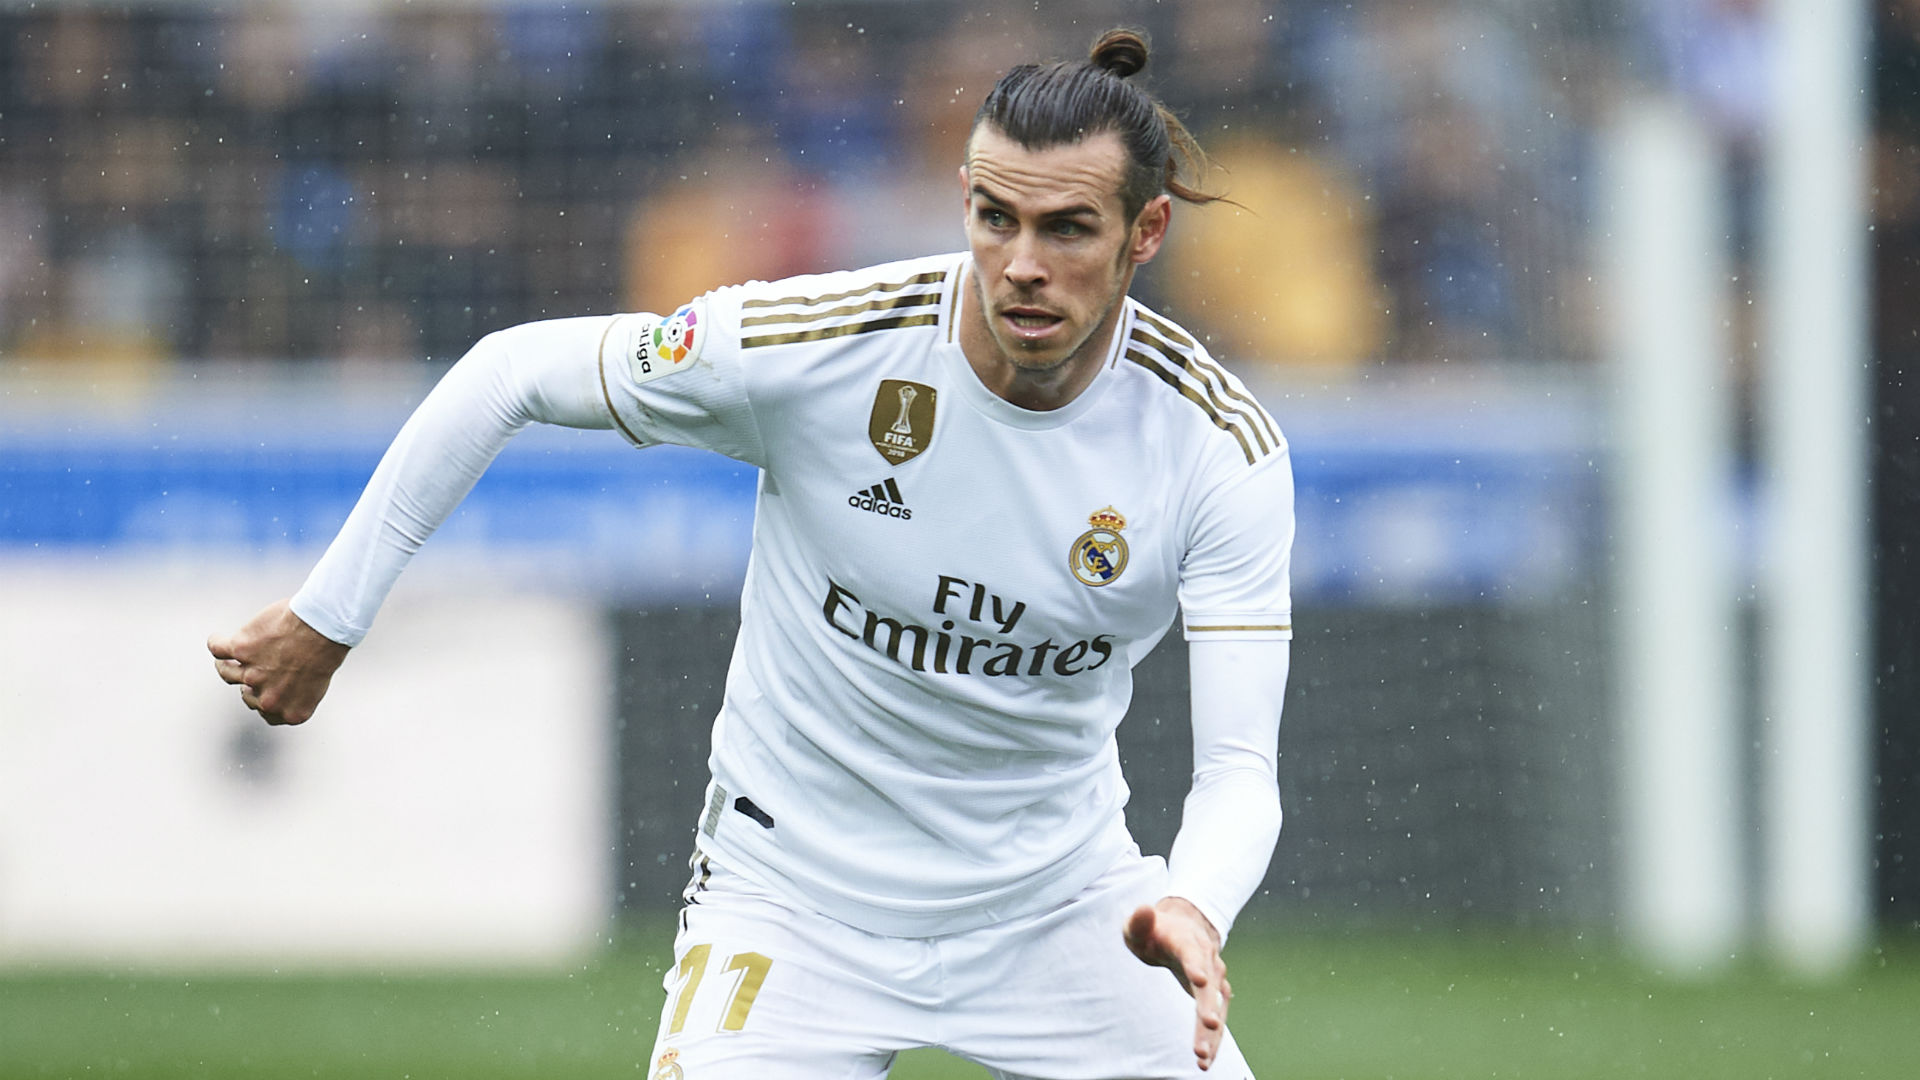 Bale 'not ecstatic' to be at Real Madrid but has never asked to leave - agent